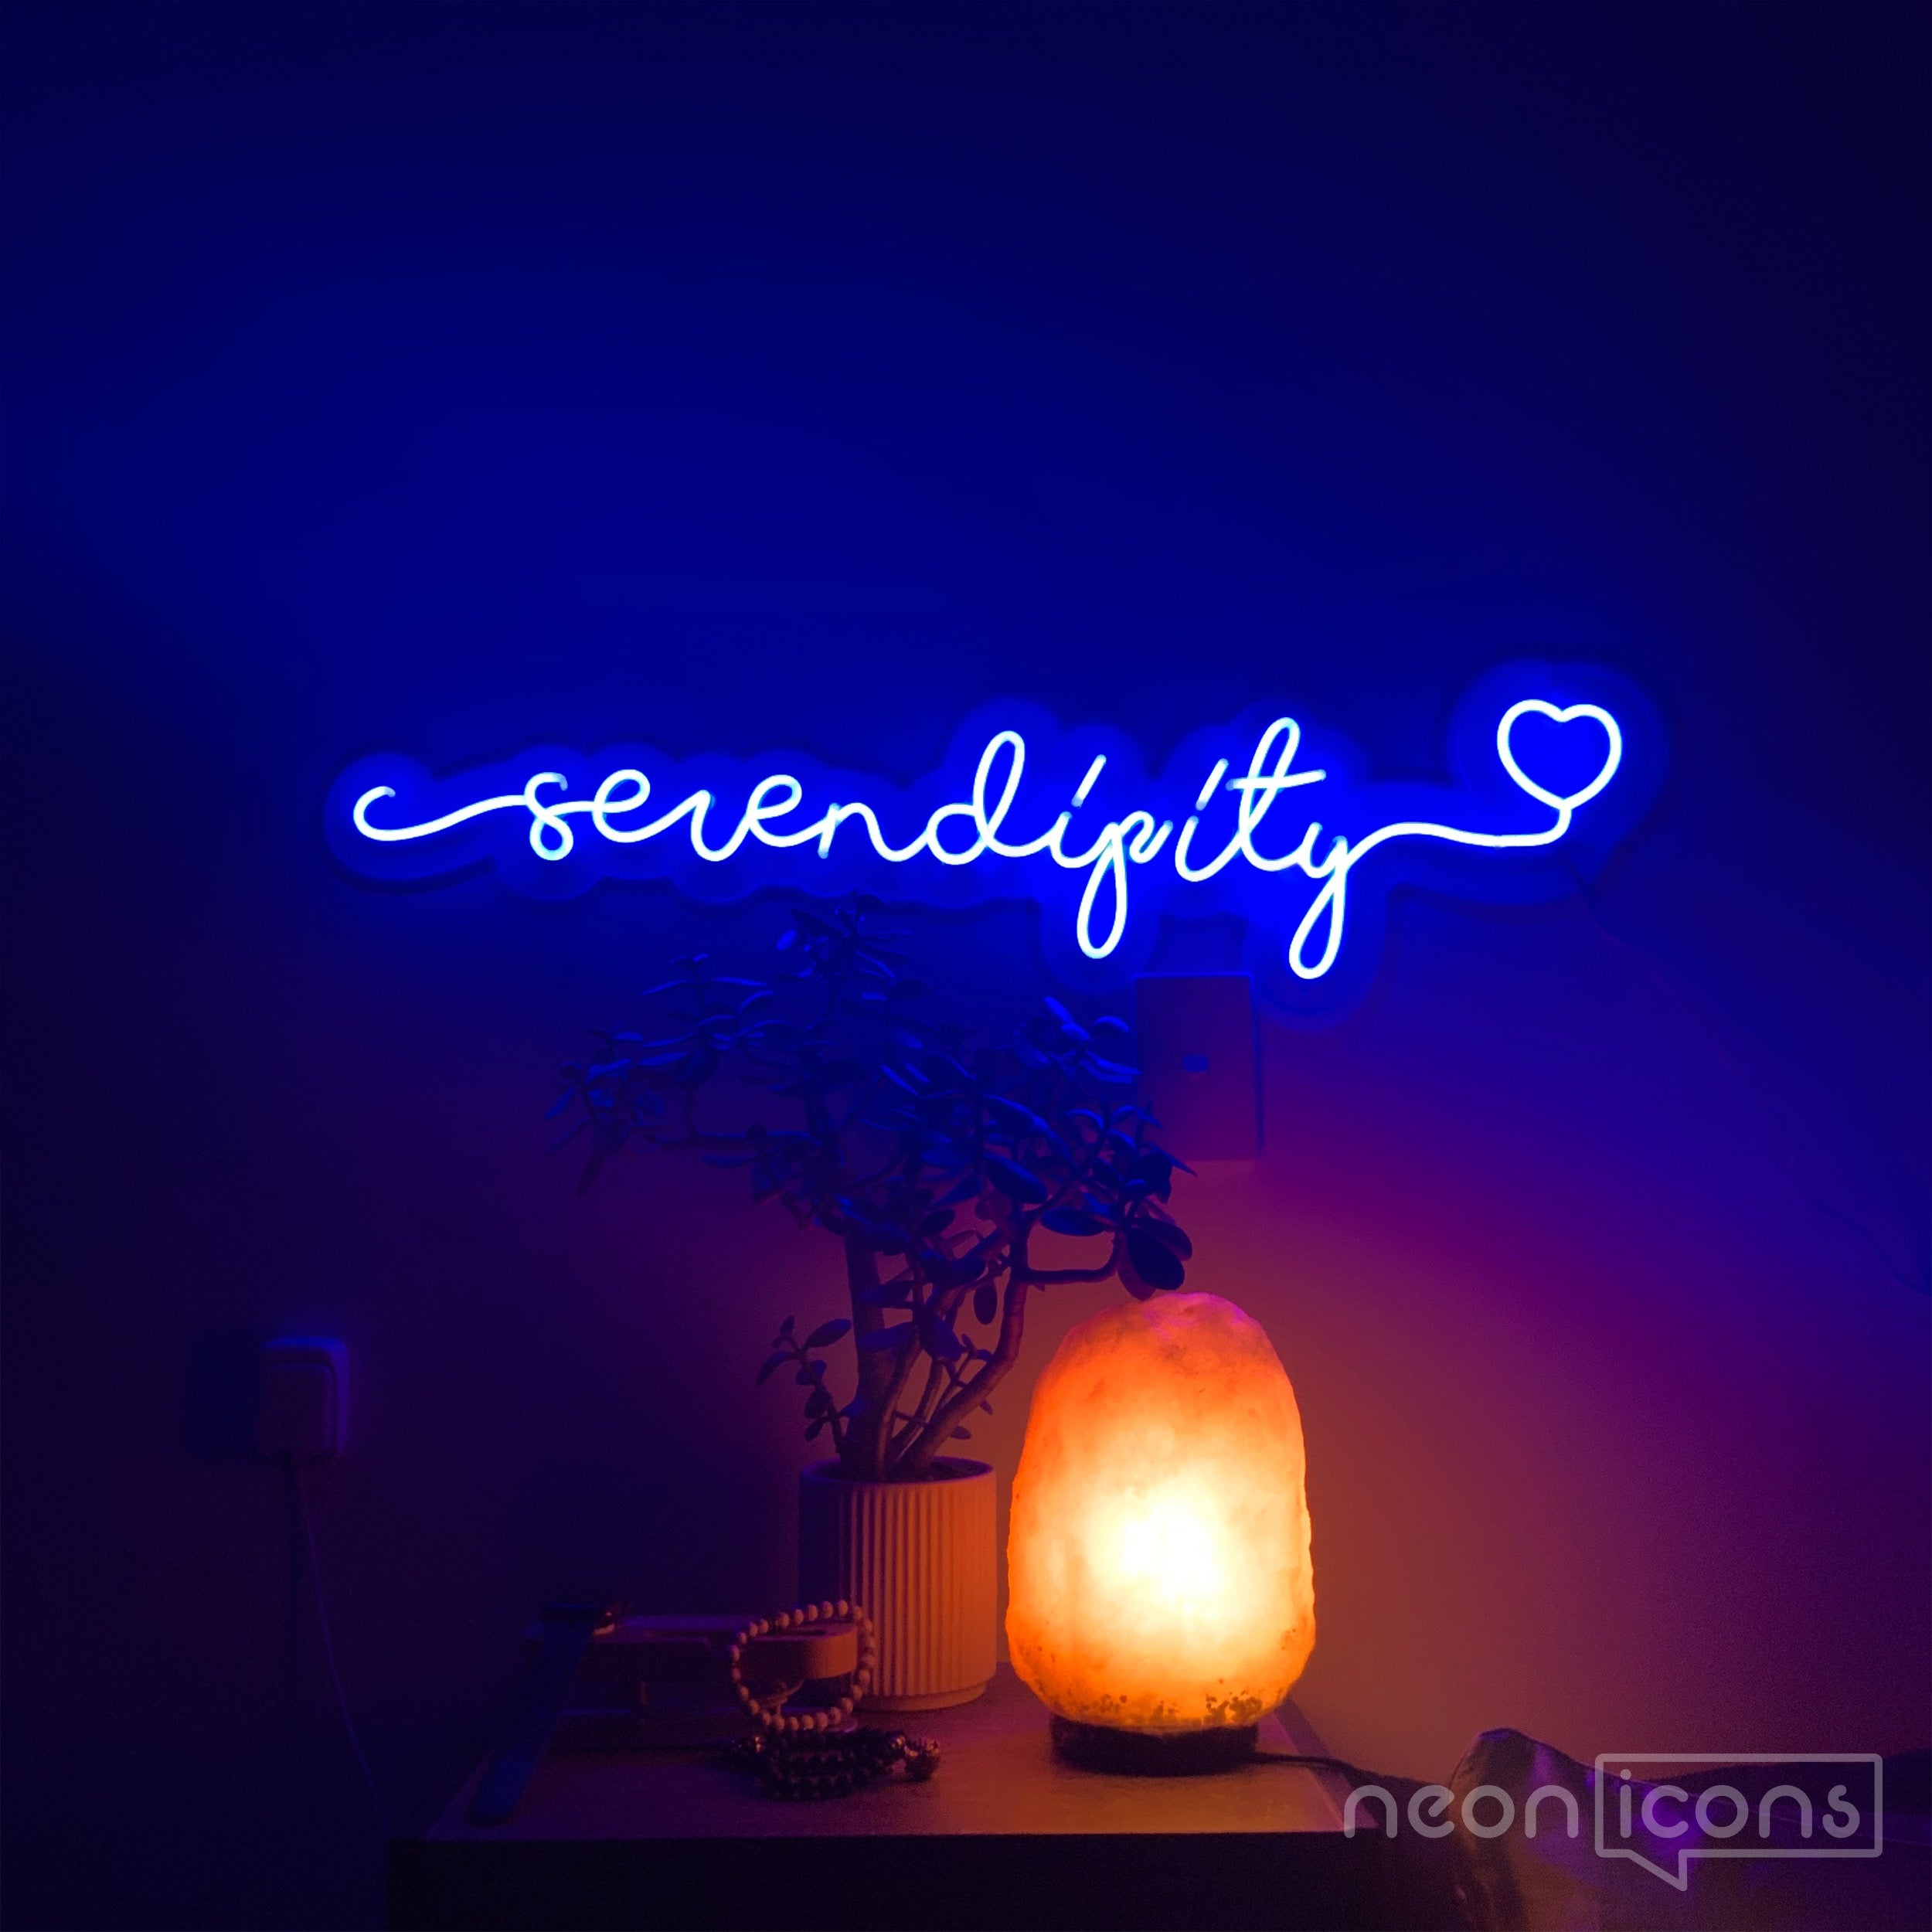 Serendipity Neon Sign by Neon Icons Depicting Safety